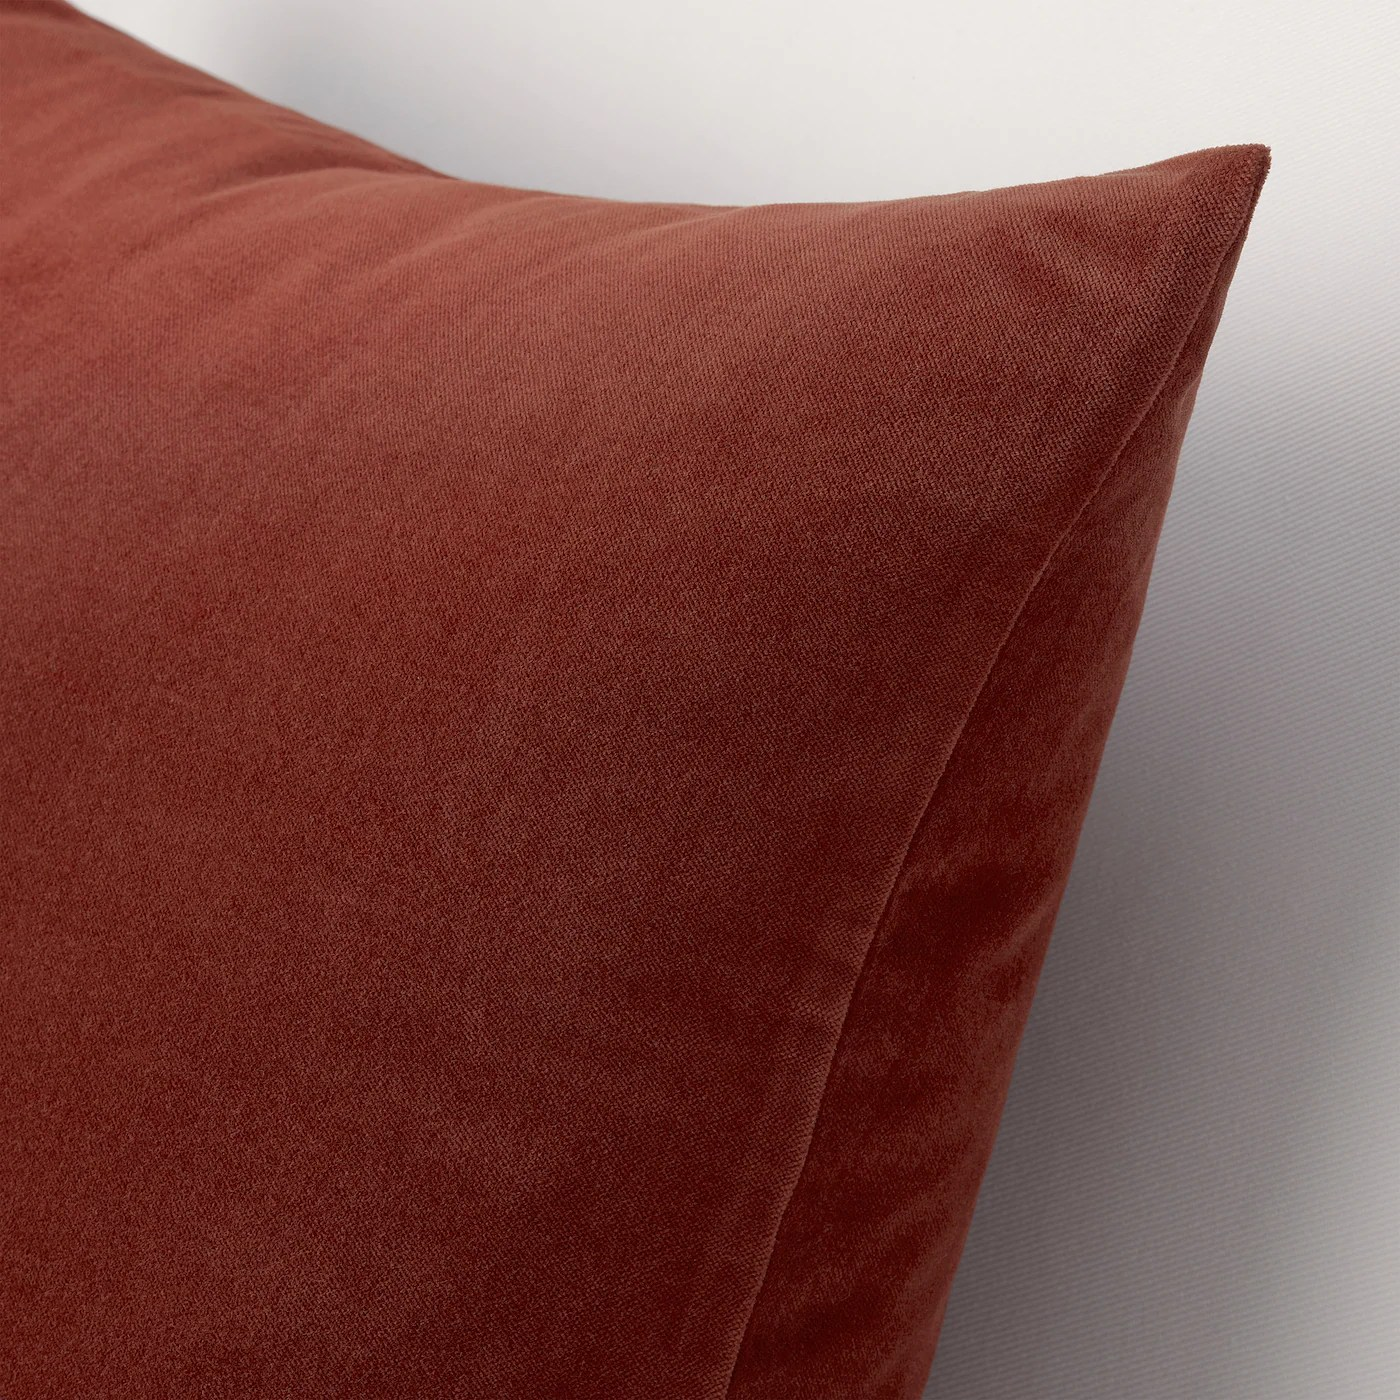 sanela cushion cover red brown 20x20